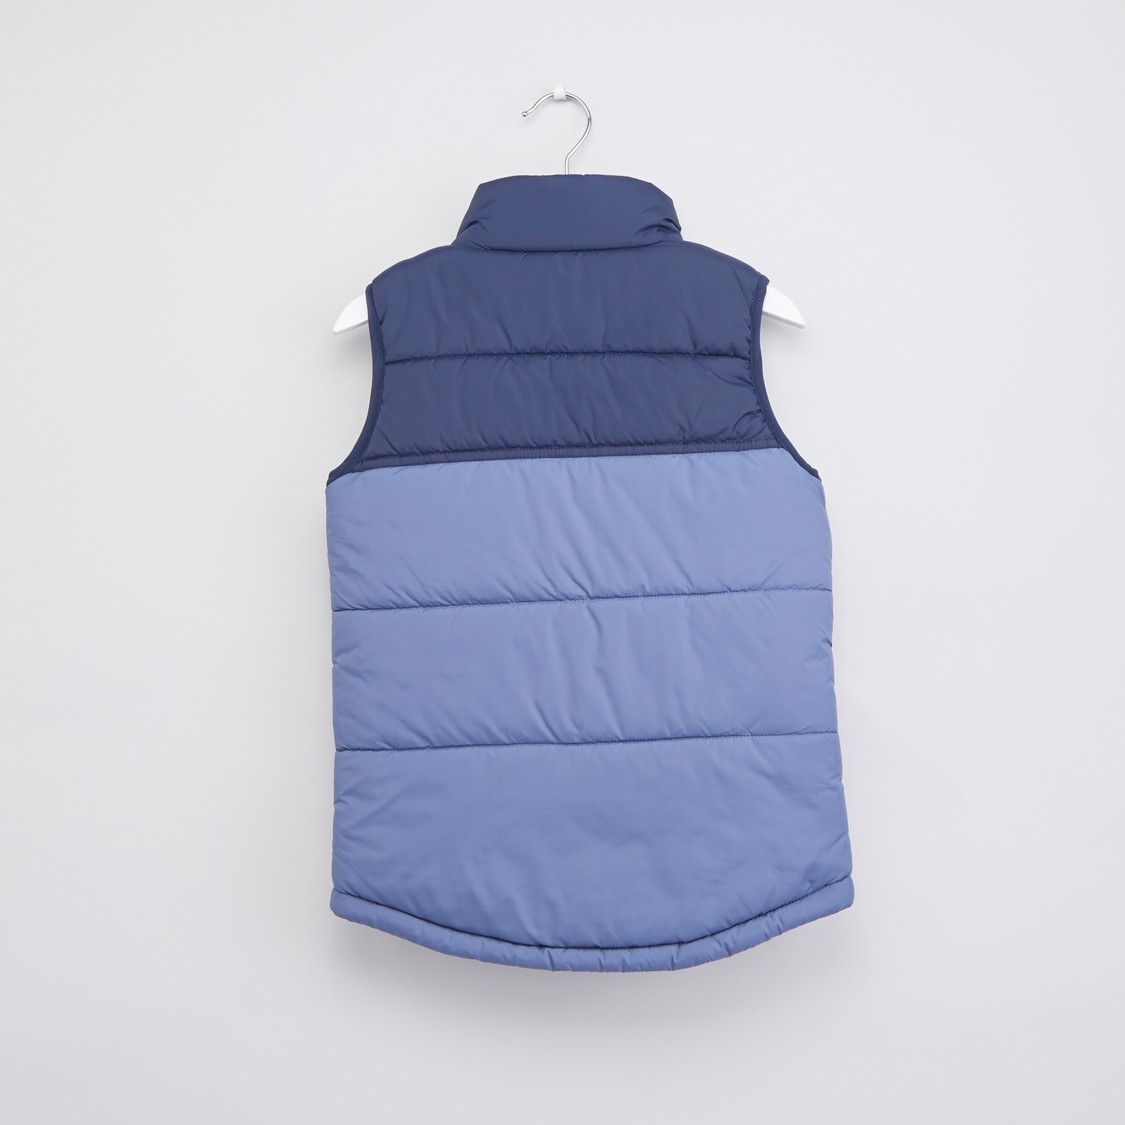 Printed Sleeveless Gilet with High Neck and Zip Closure